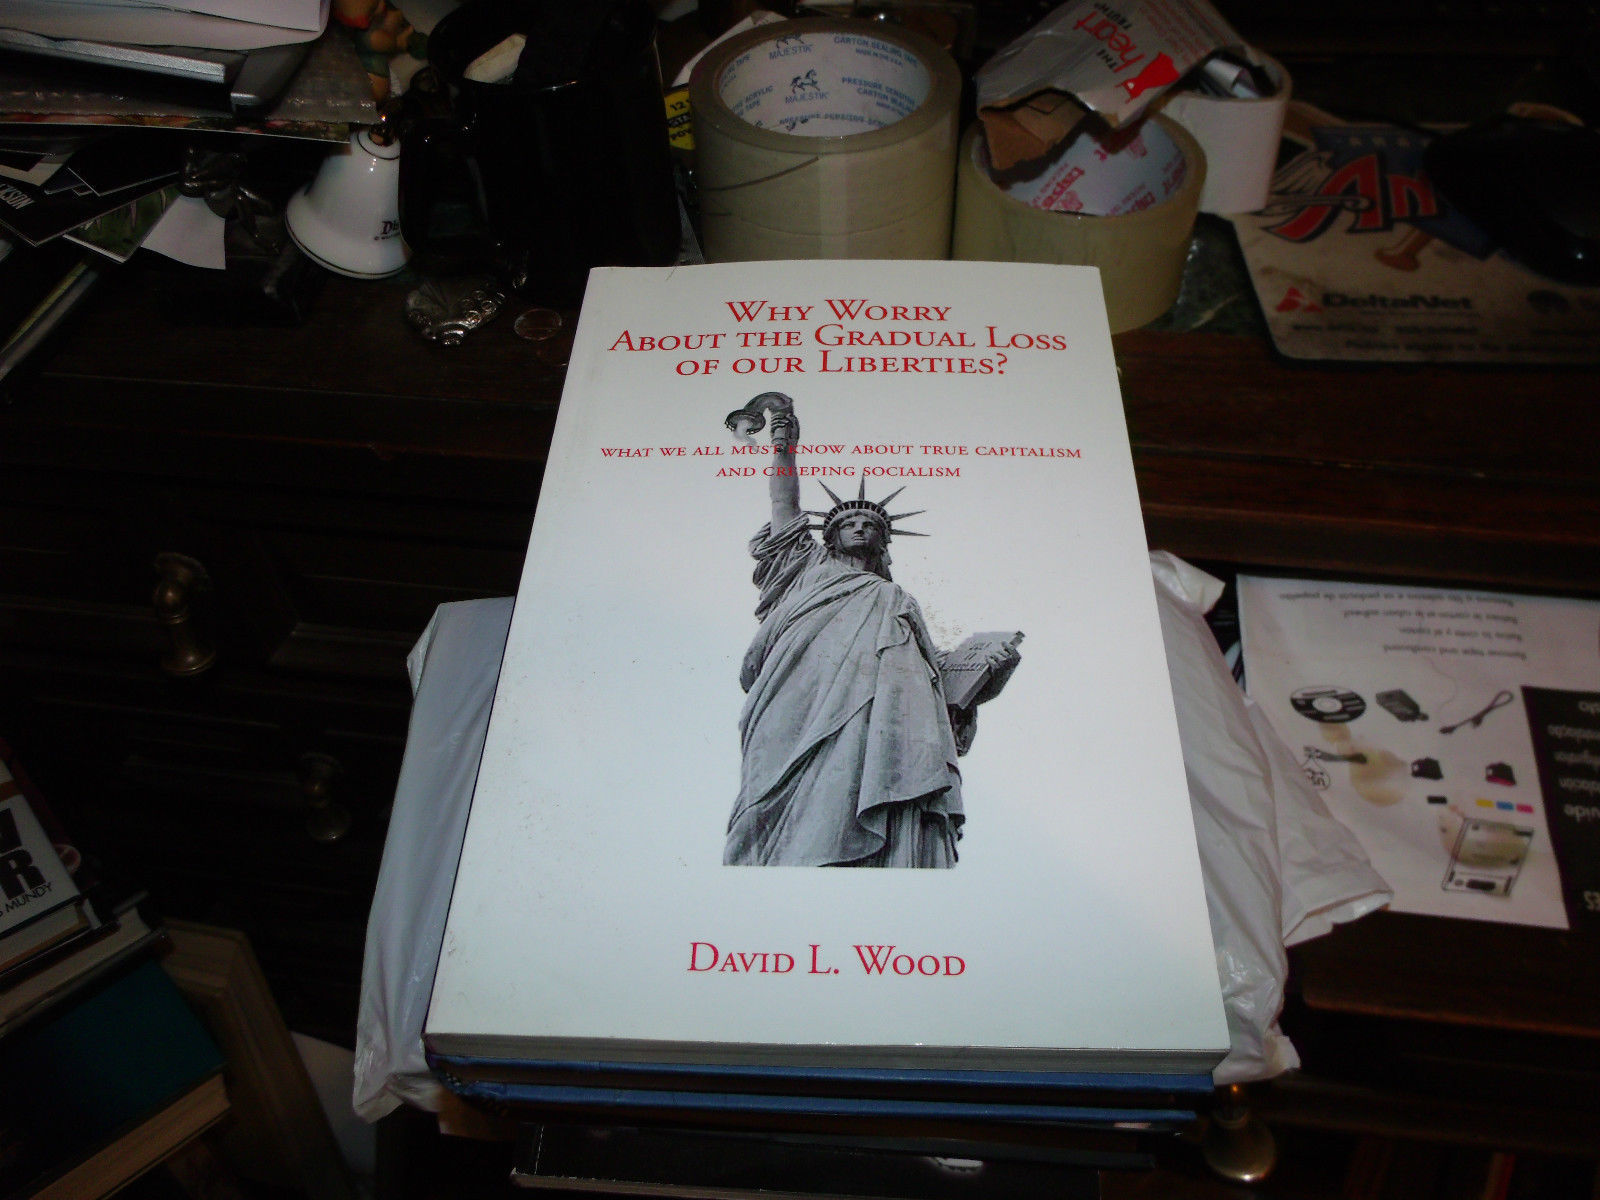 Why The Big Worry About the Gradual Loss SIGNED BY DAVID L WOOD 1ST/1ST